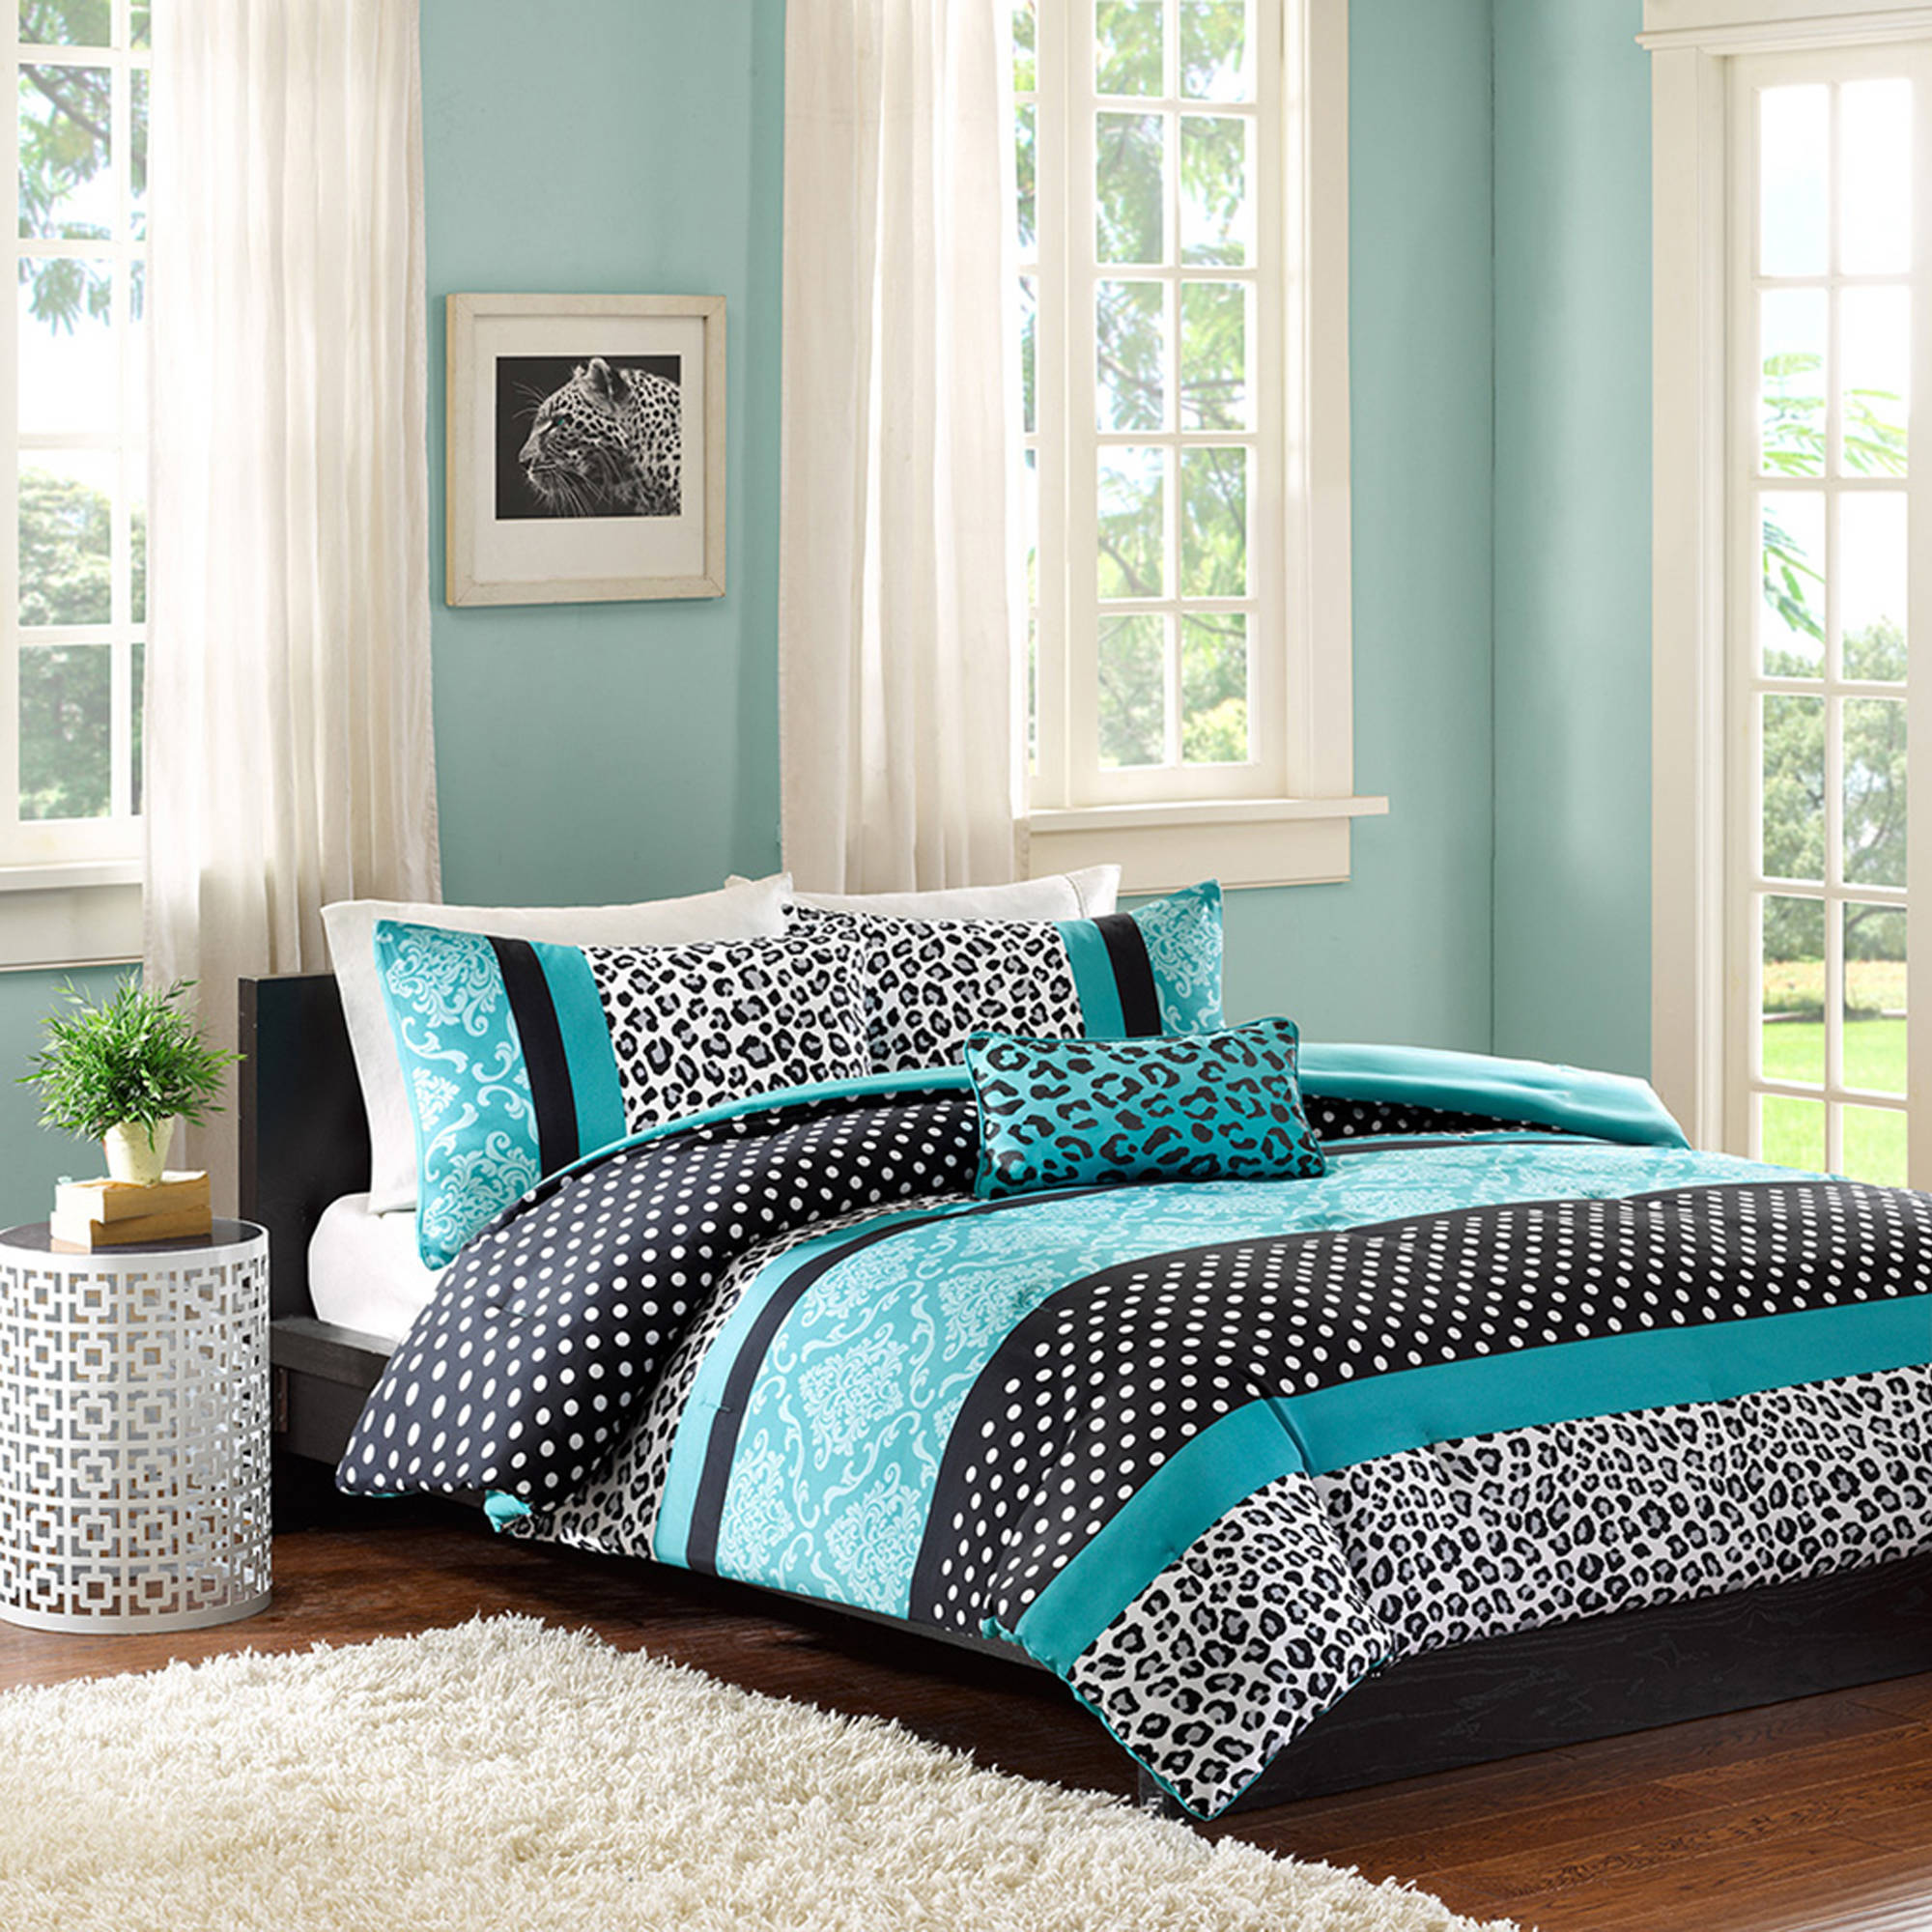 Black and blue bed sheets - Full